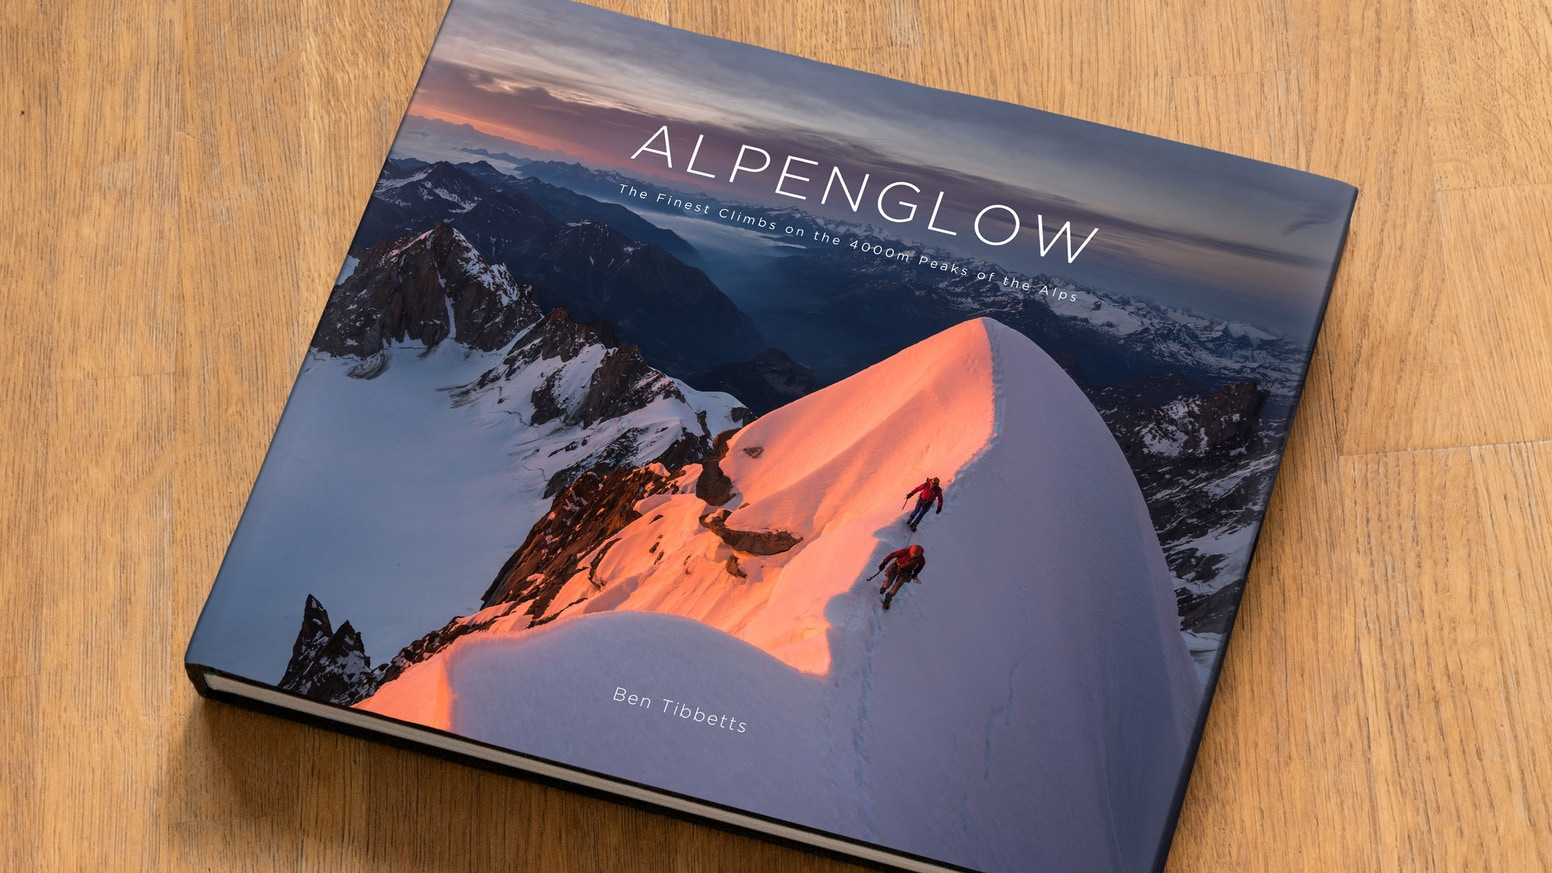 ALPENGLOW is a beautiful and inspiring book of photographs, drawings and stories from the highest peaks of the European Alps ––––––––––––––––––––– This Kickstarter campaign has ended! The book is AVAILABLE TO PRE-ORDER NOW at BENTIBBETTS.COM